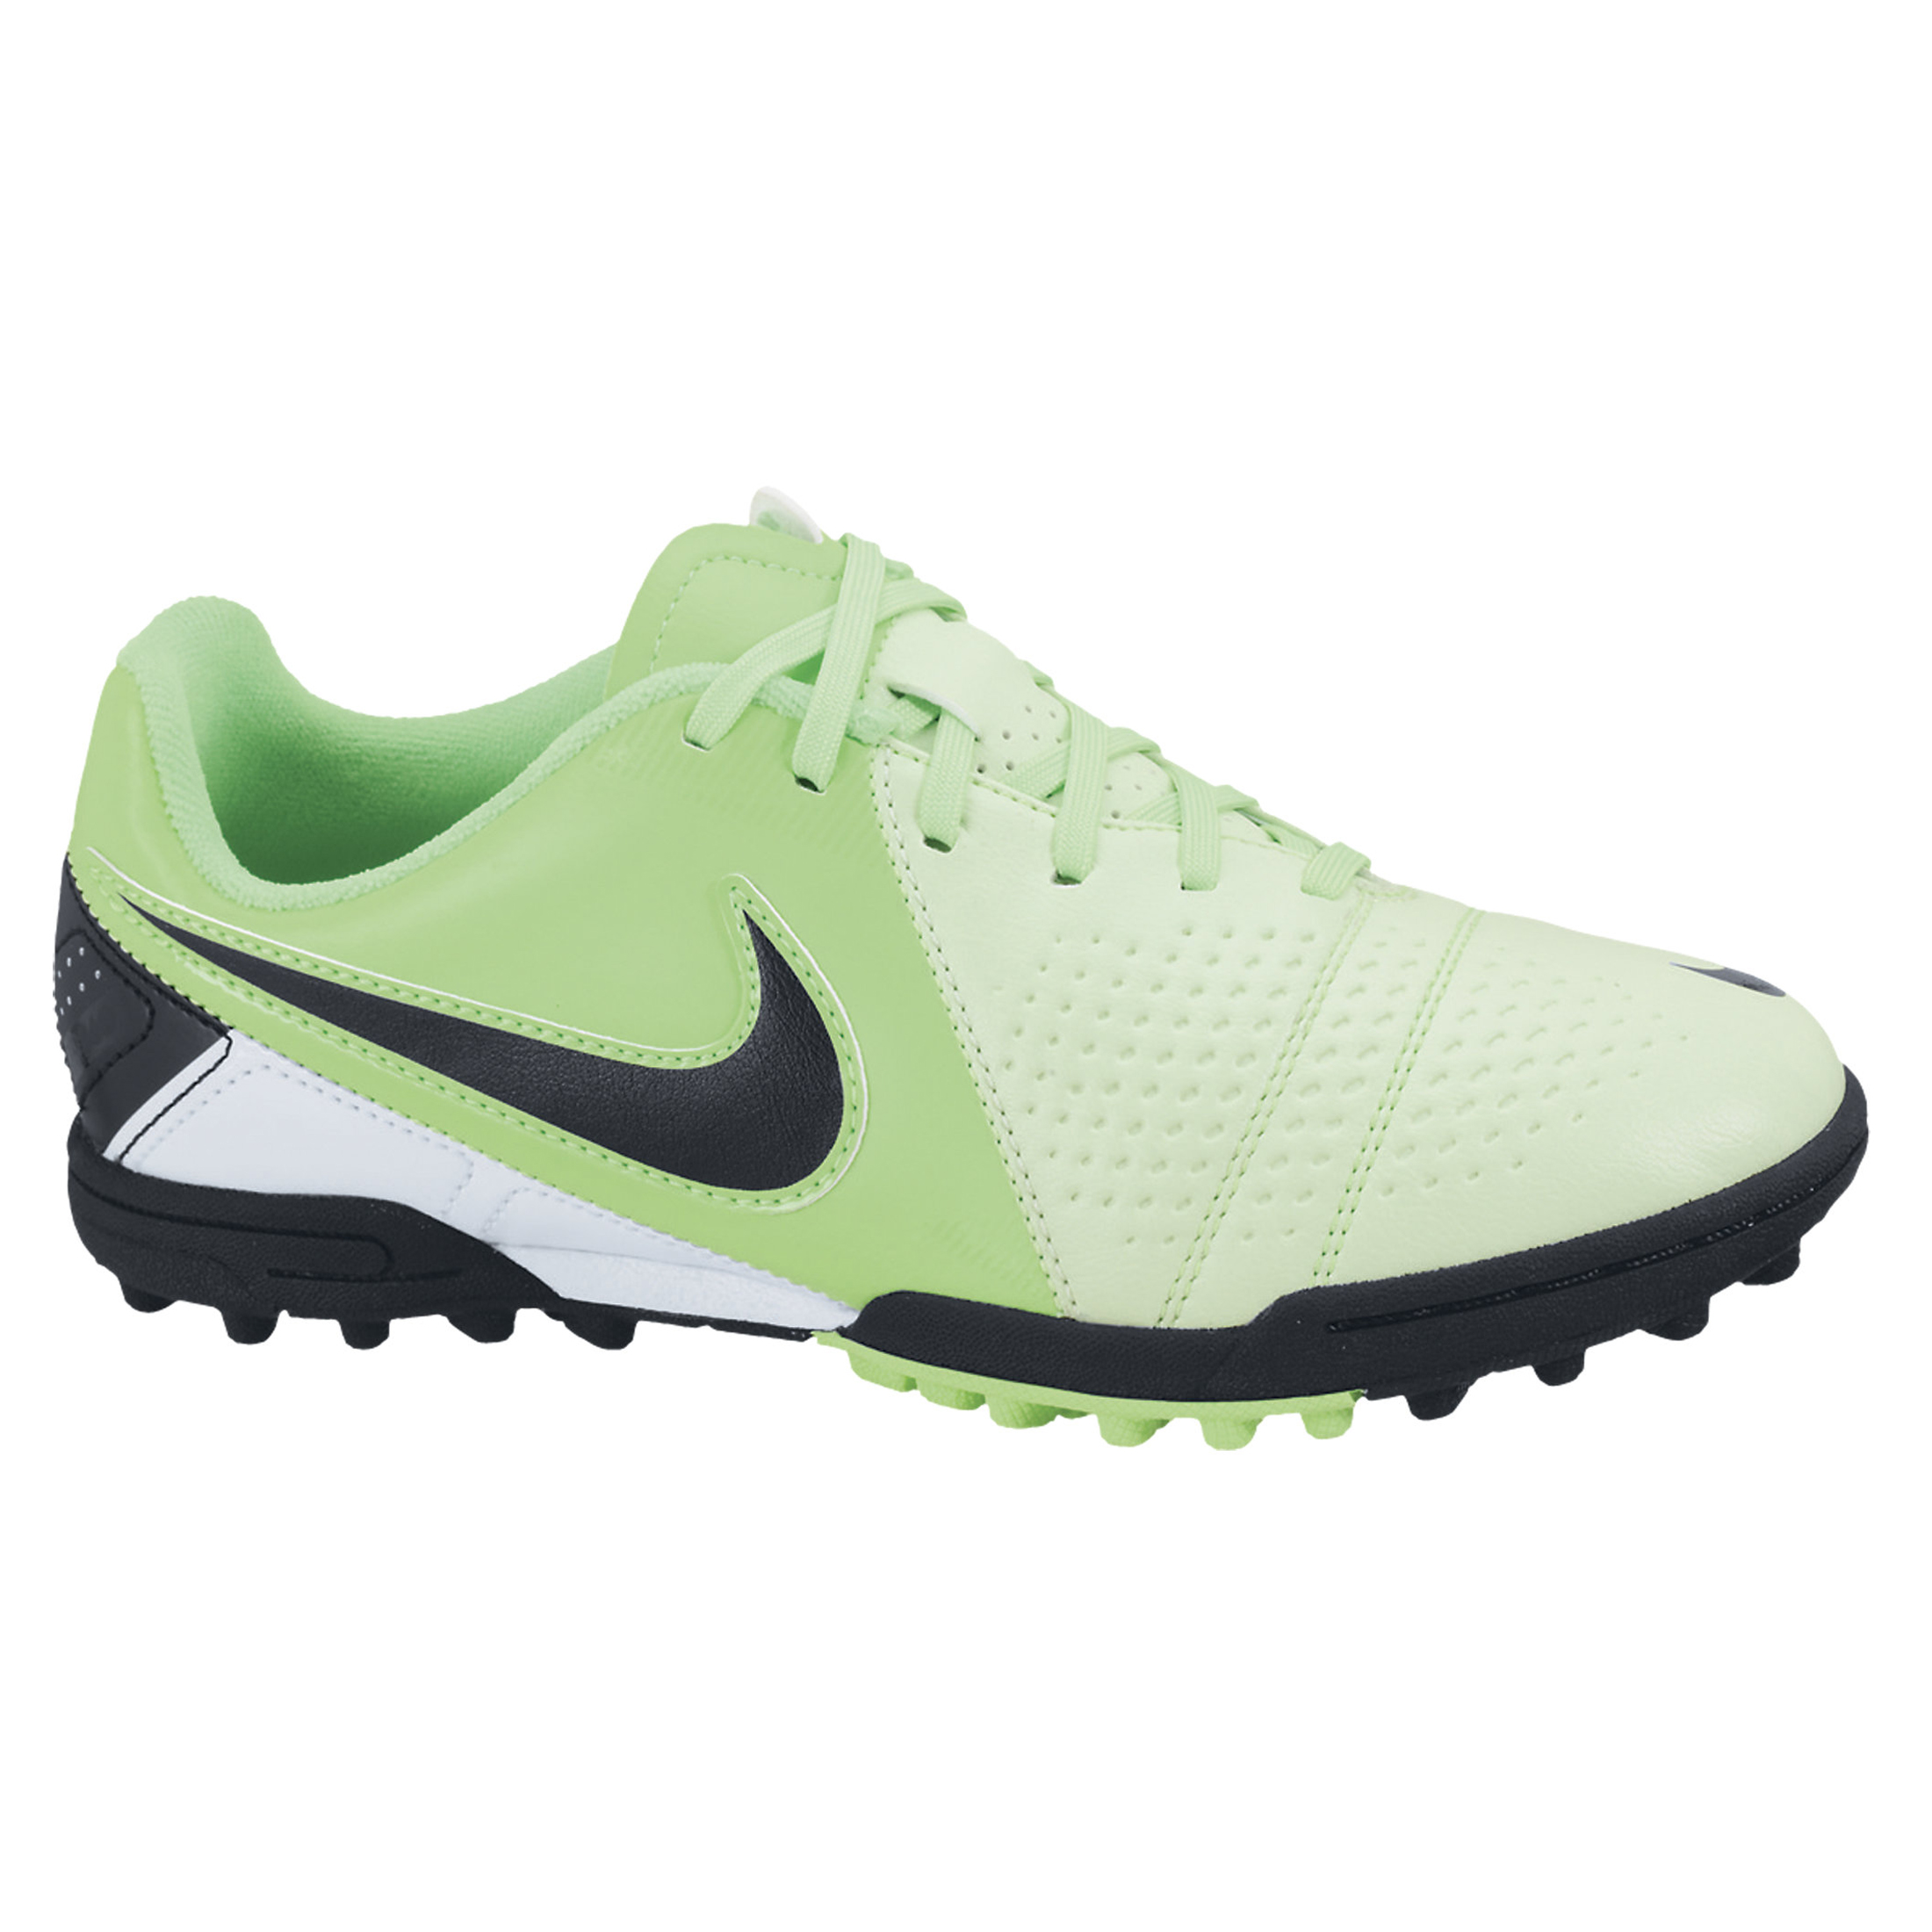 Nike CTR360 Libretto III Astroturf Trainers - Fresh Mint/Black/Neo Lime - Kids